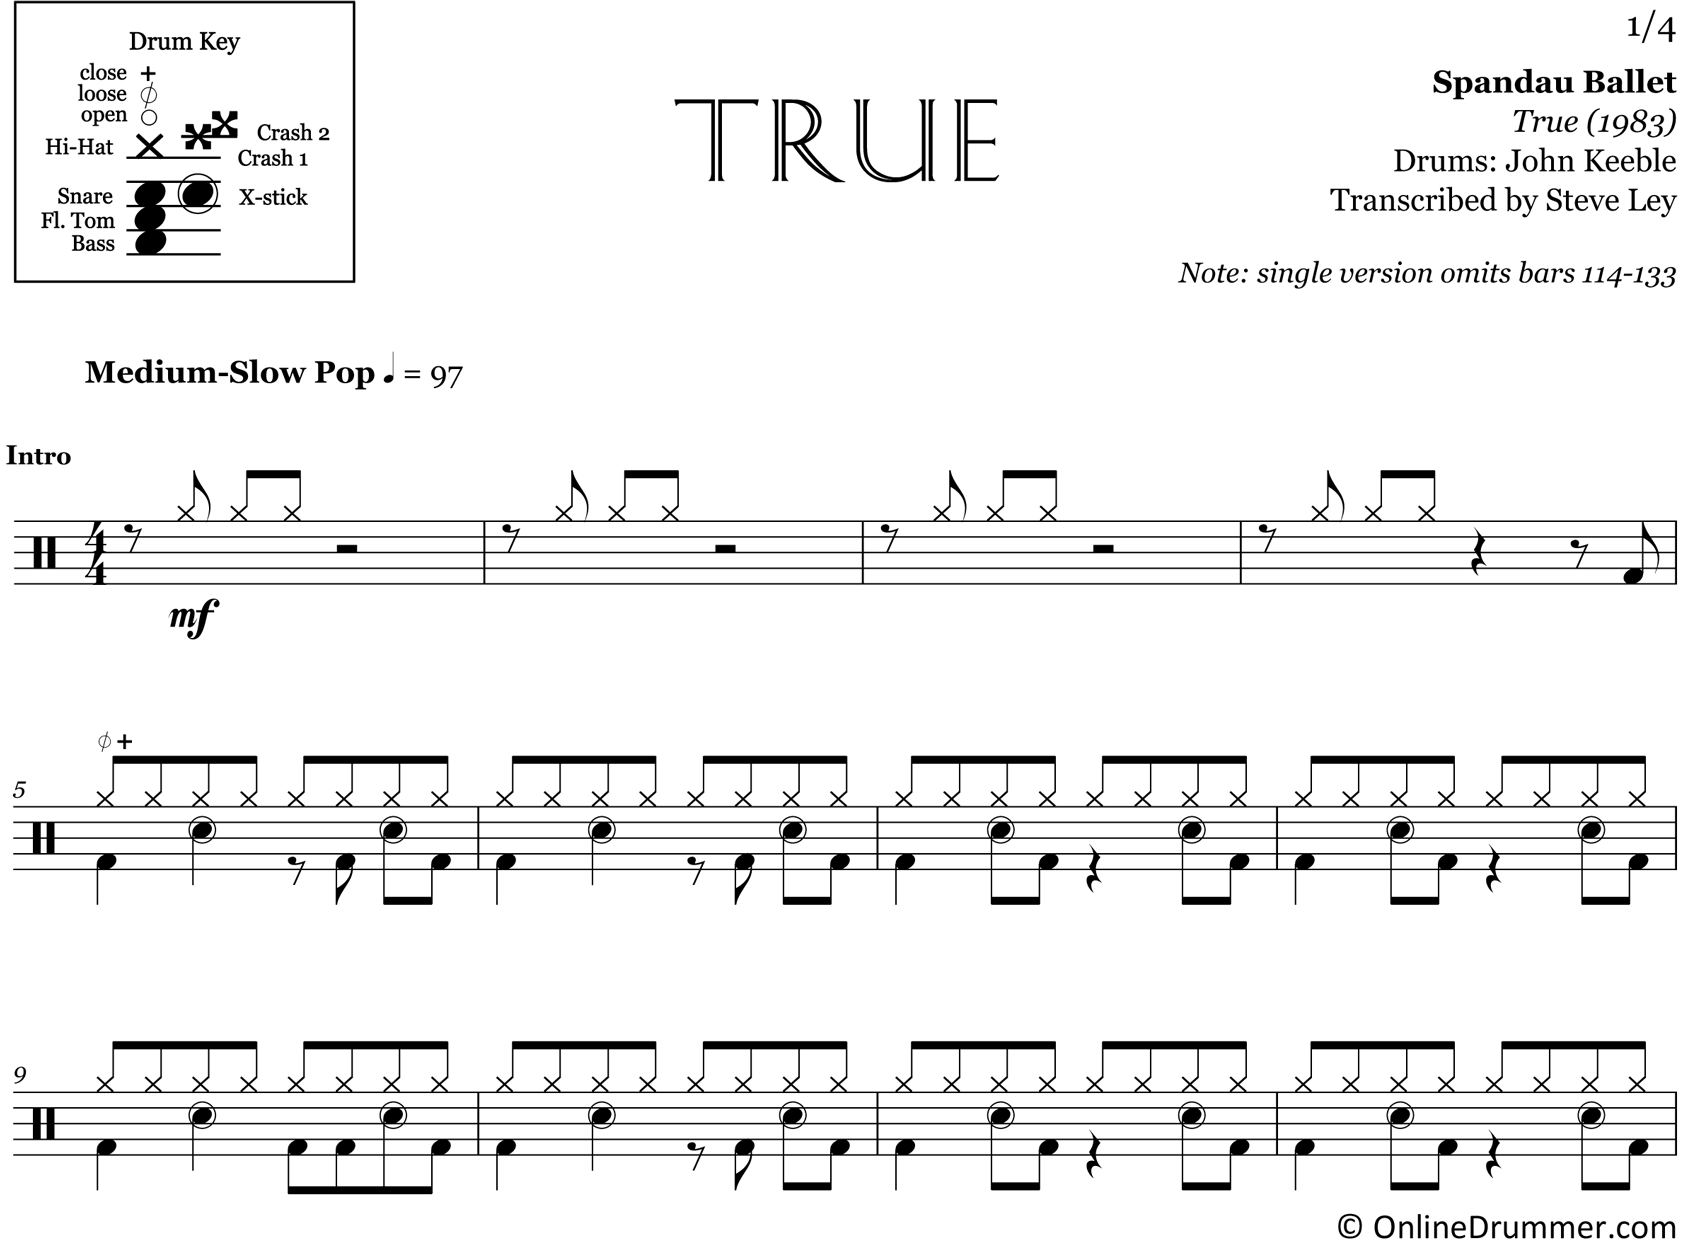 True - Spandau Ballet - Drum Sheet Music